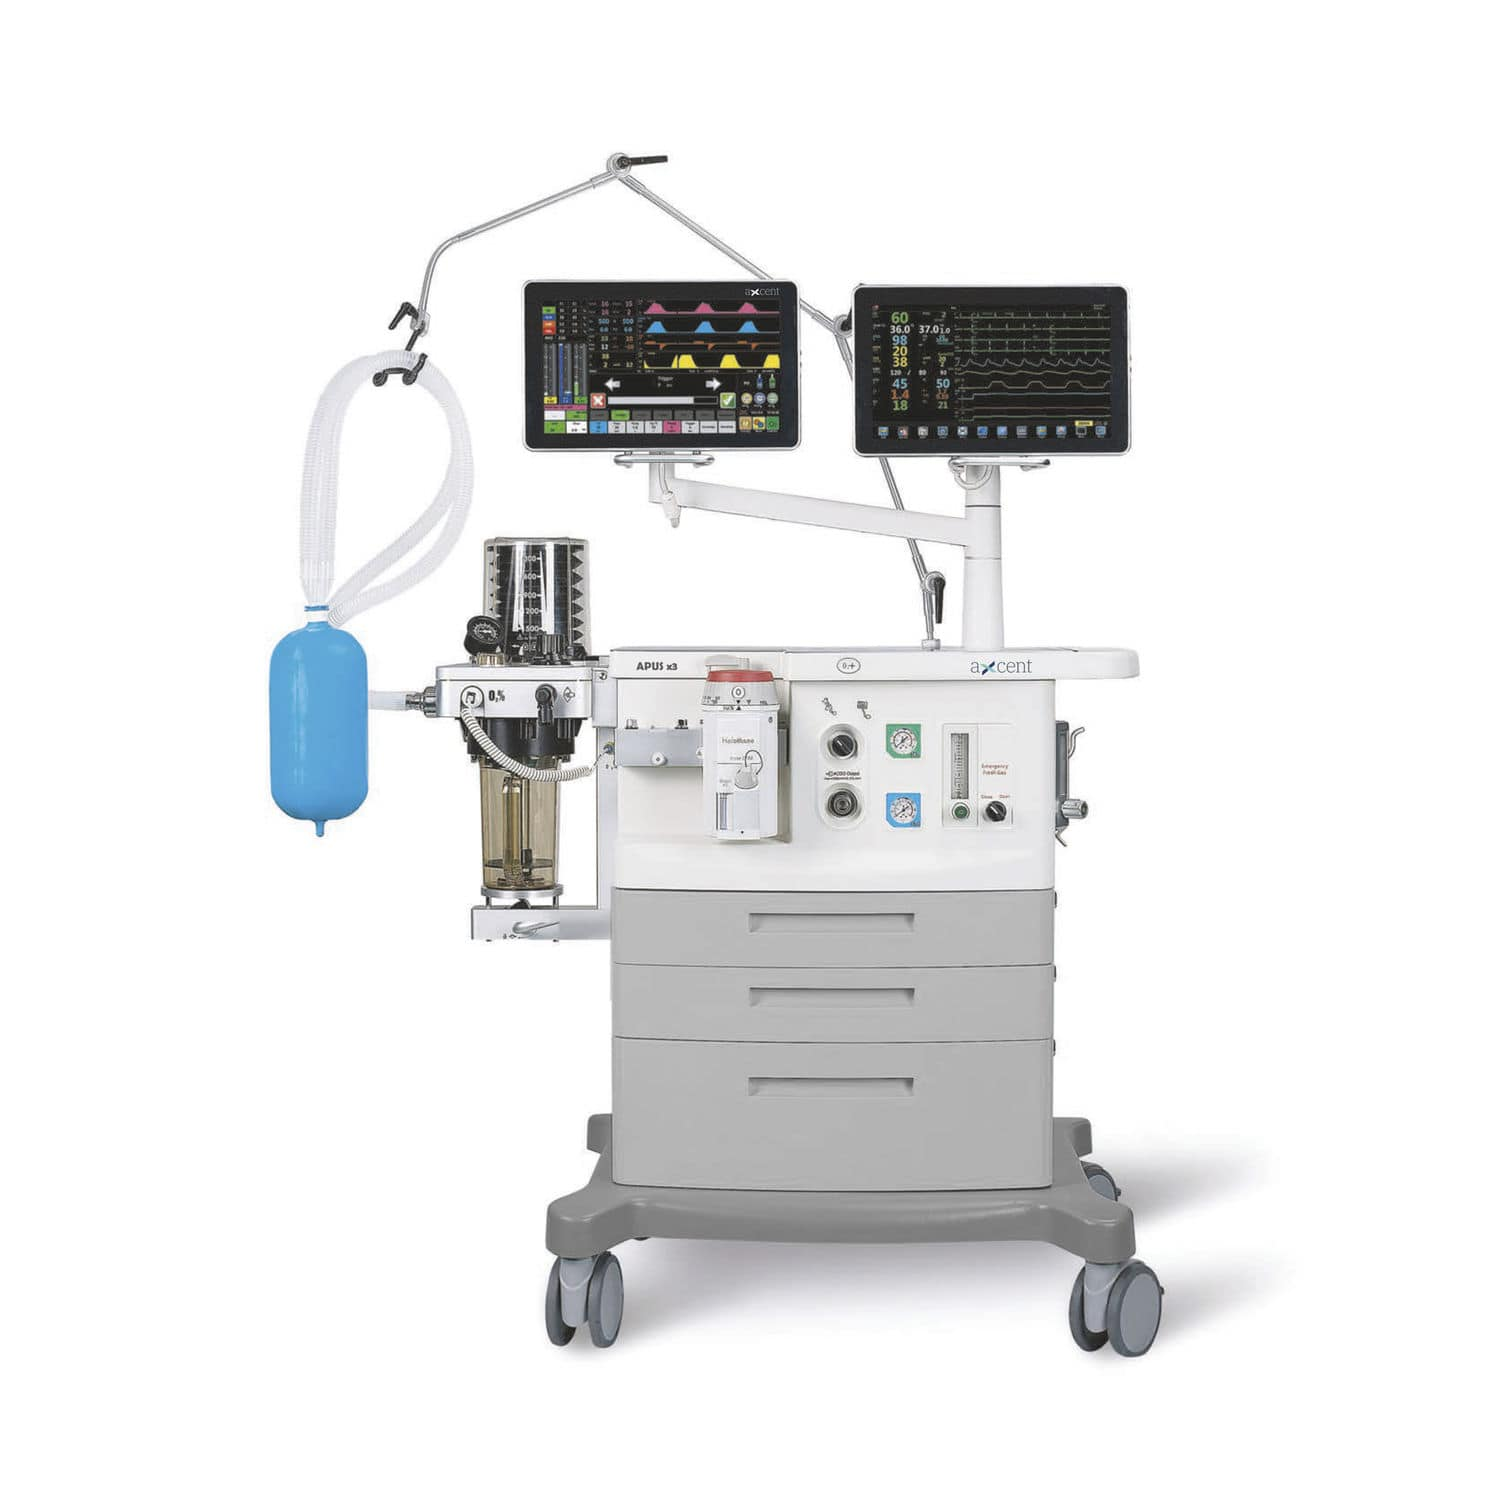 Design Ventilator Trolley Mounted Anesthesia Workstation With Respiratory